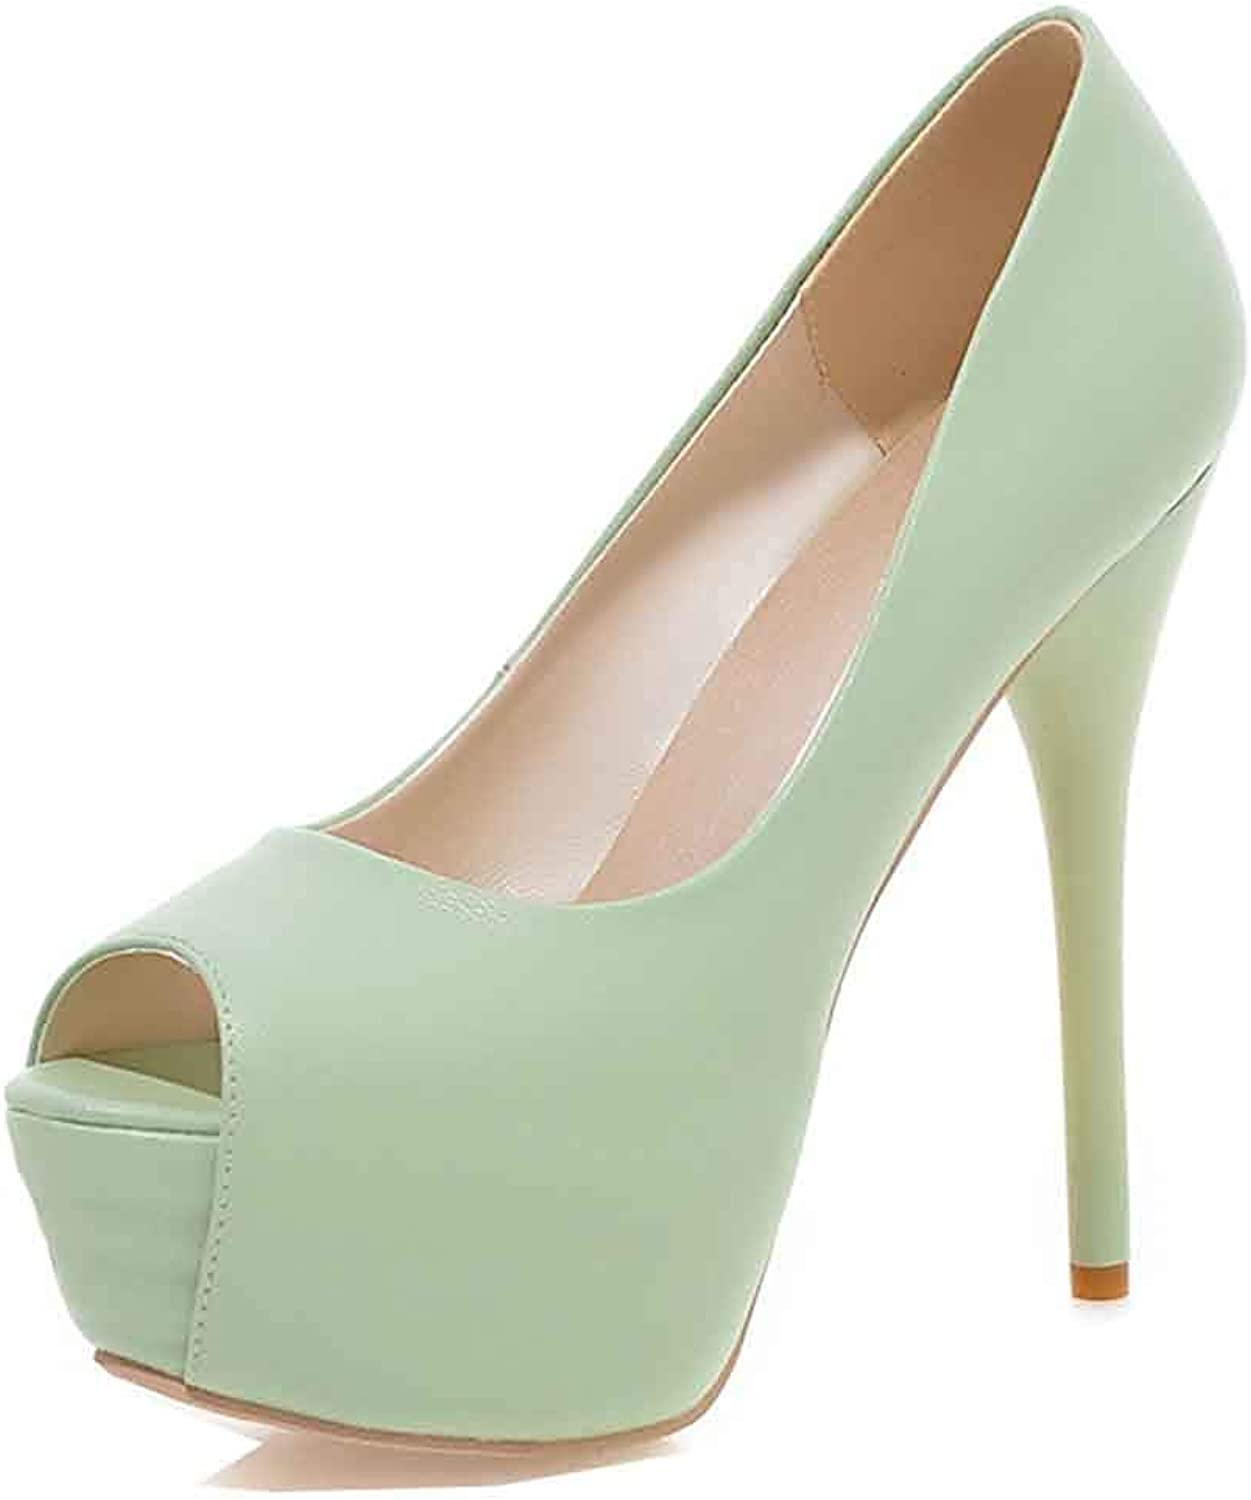 Unm Women's Peep Toe Pumps with Platform - Sexy Slip On Low Cut Club - Party Stiletto Very High Heels